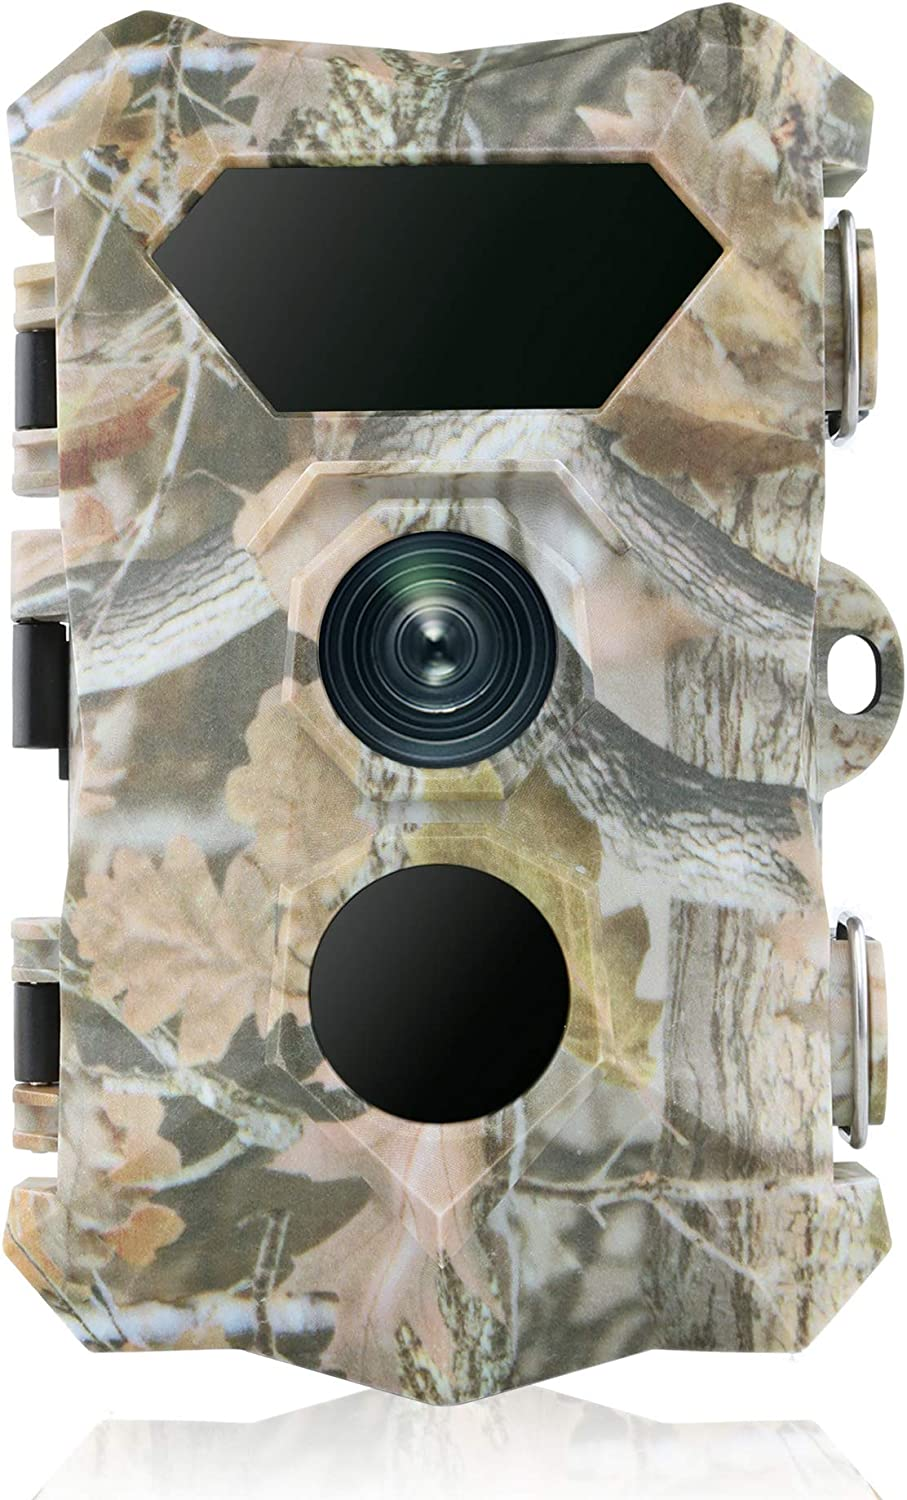 KOFOHON Trail Camera For Small Animals